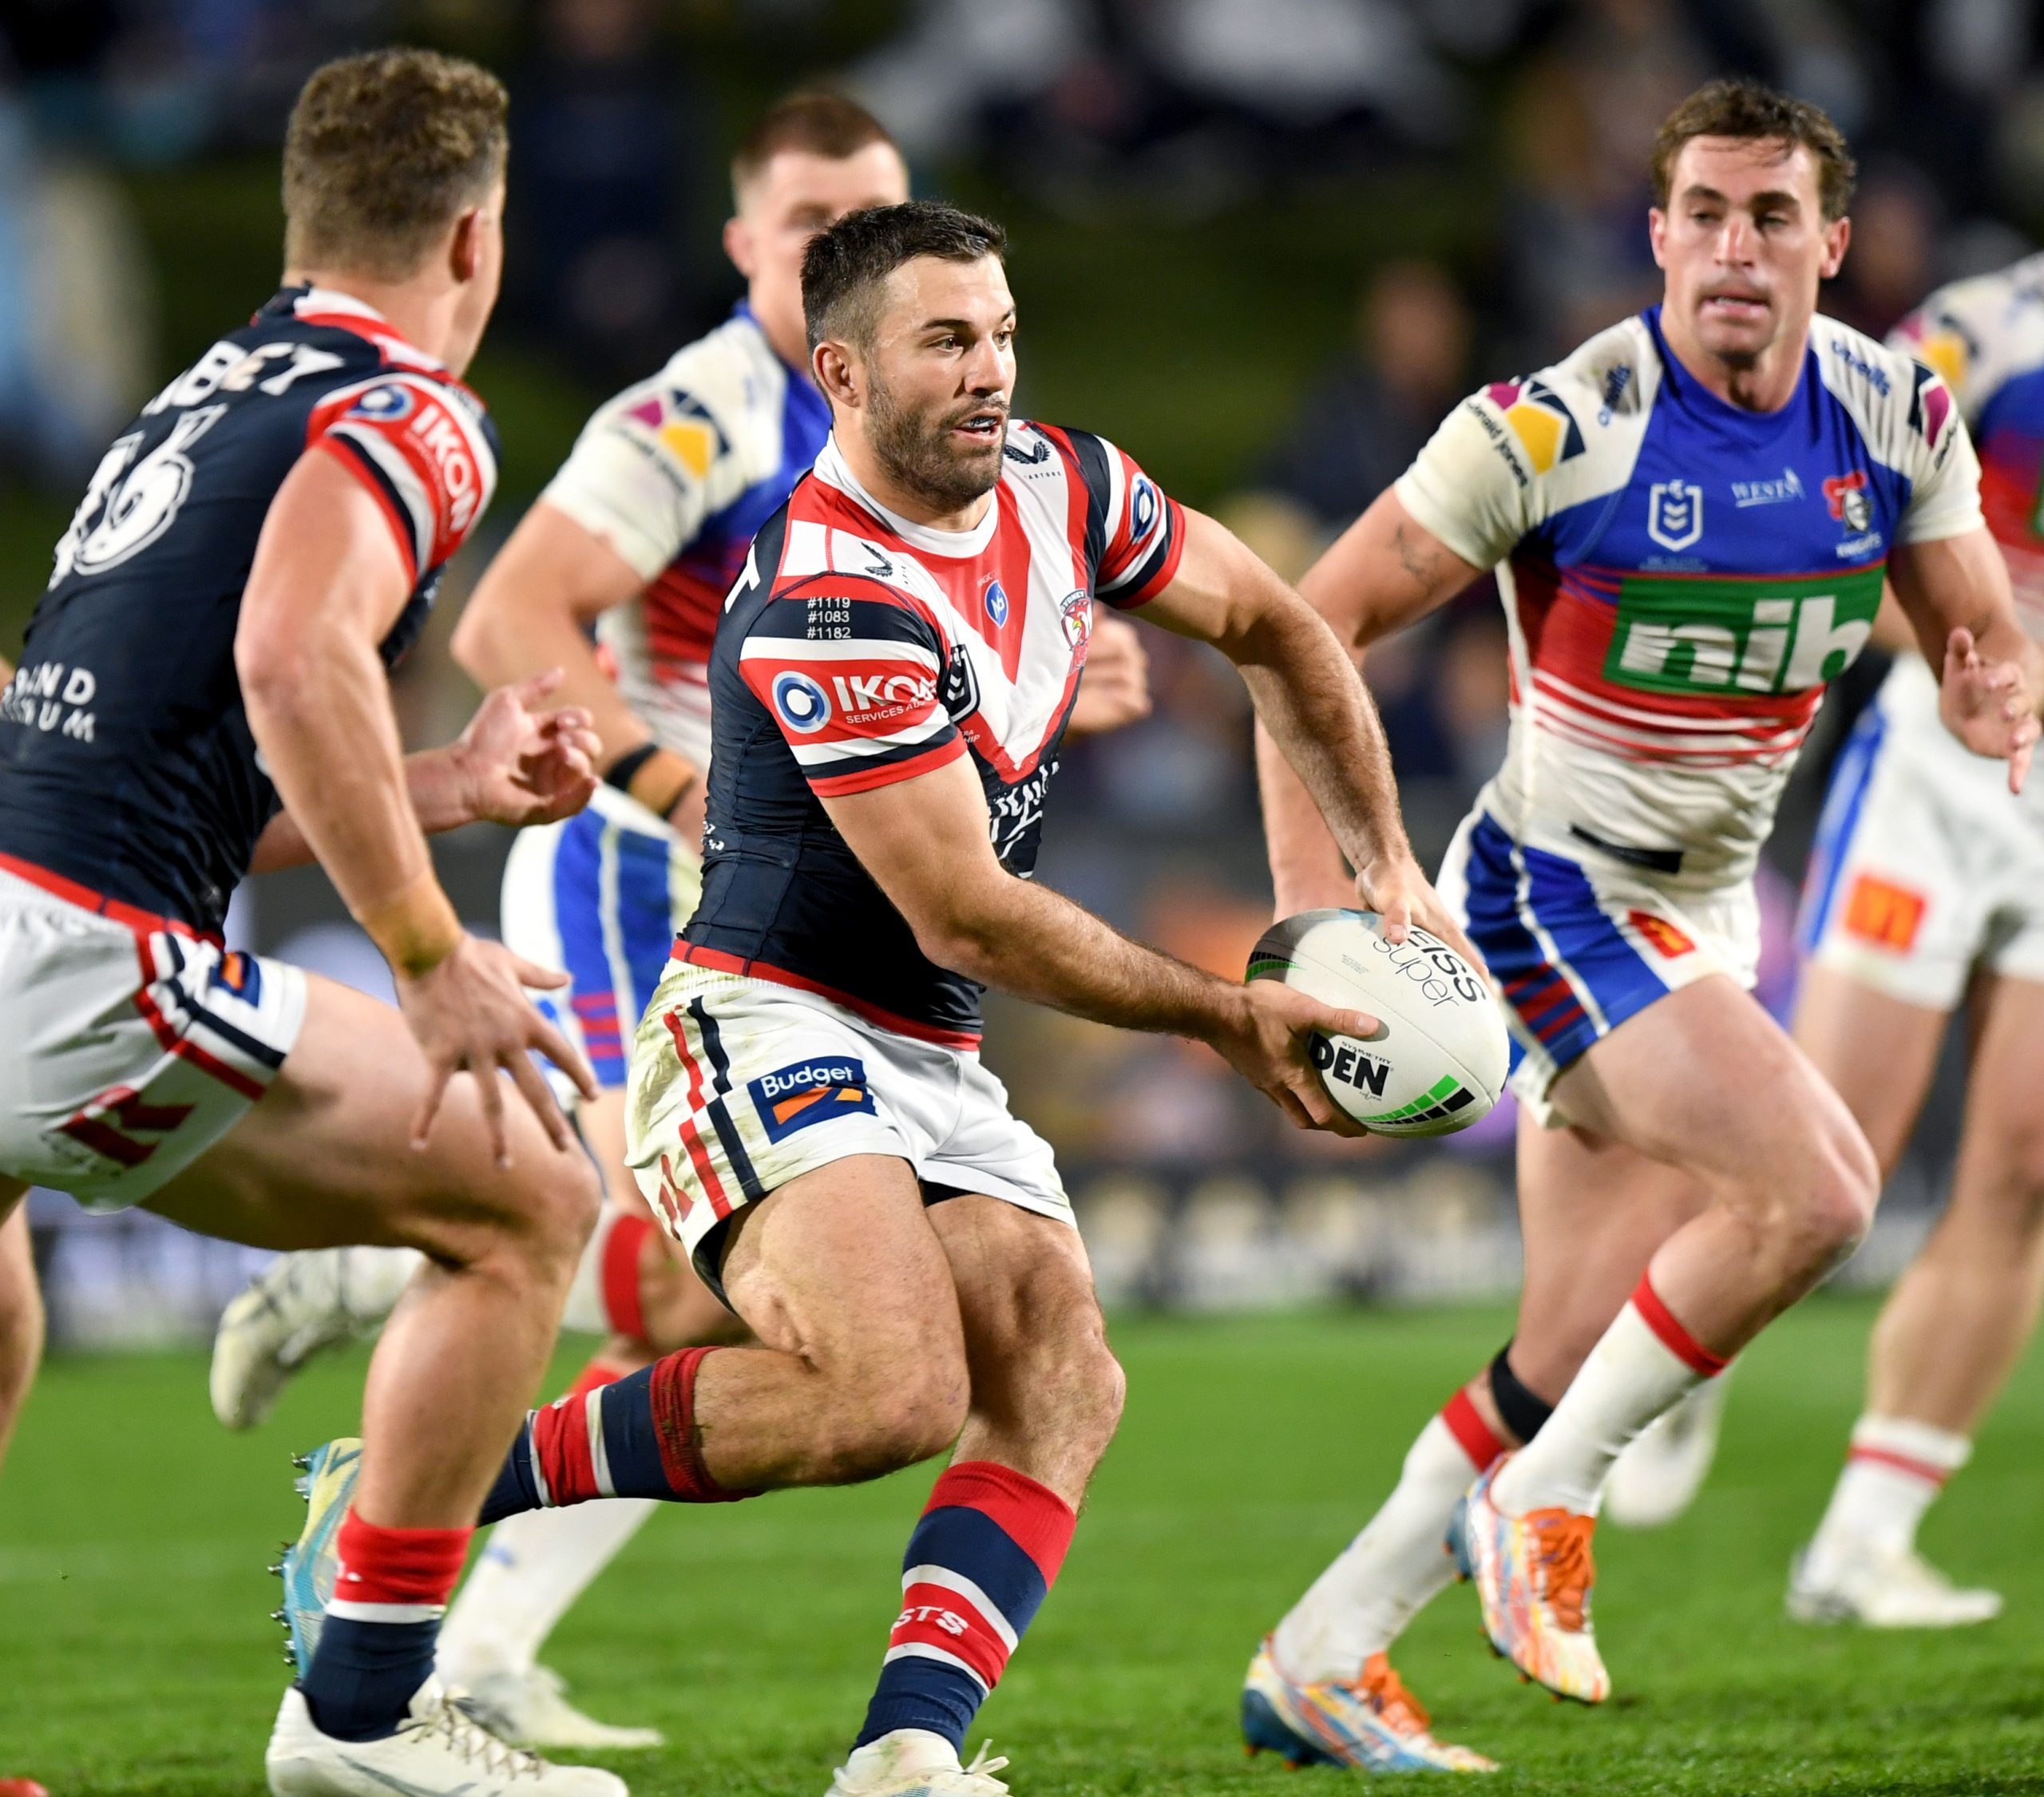 Tedesco stars as Roosters defeat Knights on the Sunshine Coast